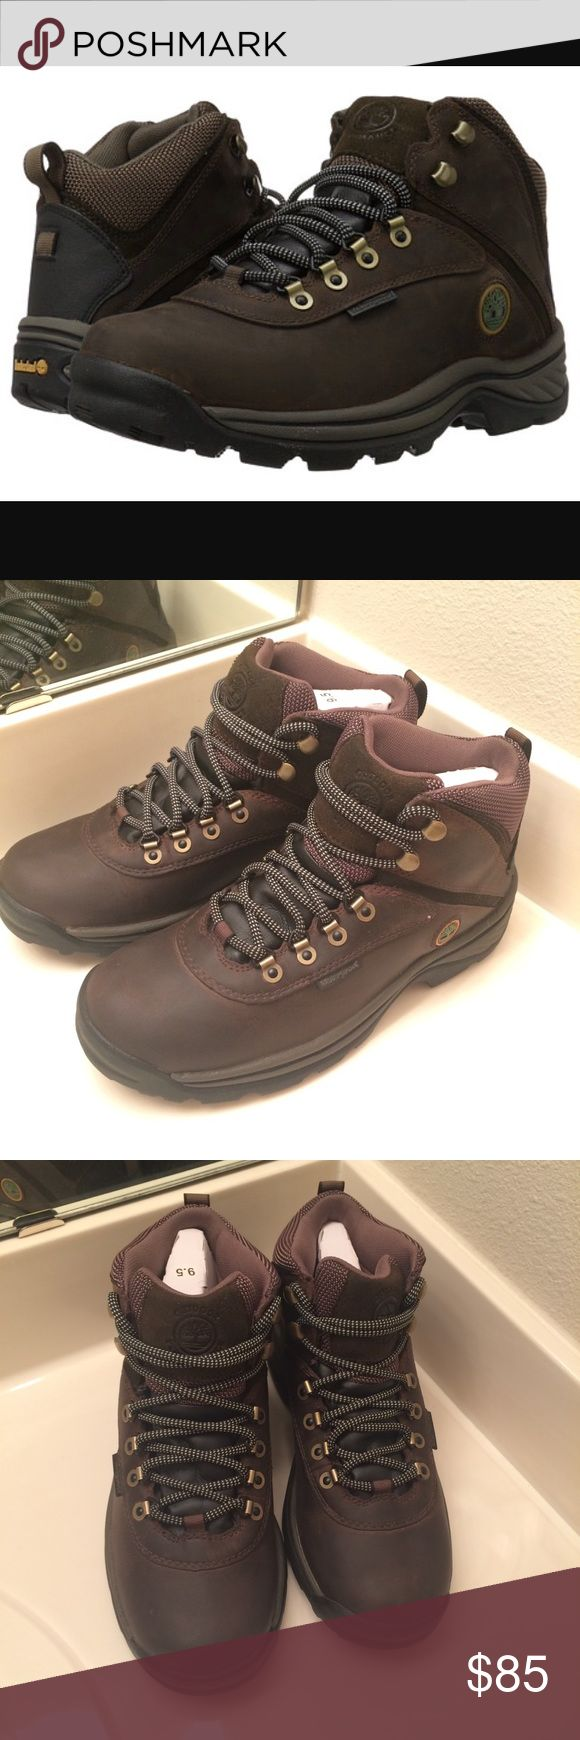 Timberland Hiking Boots NWB New with box. Minor signs consistent with trying on inside. These are waterproof high quality hiking boots that are made to last. Timberland Shoes